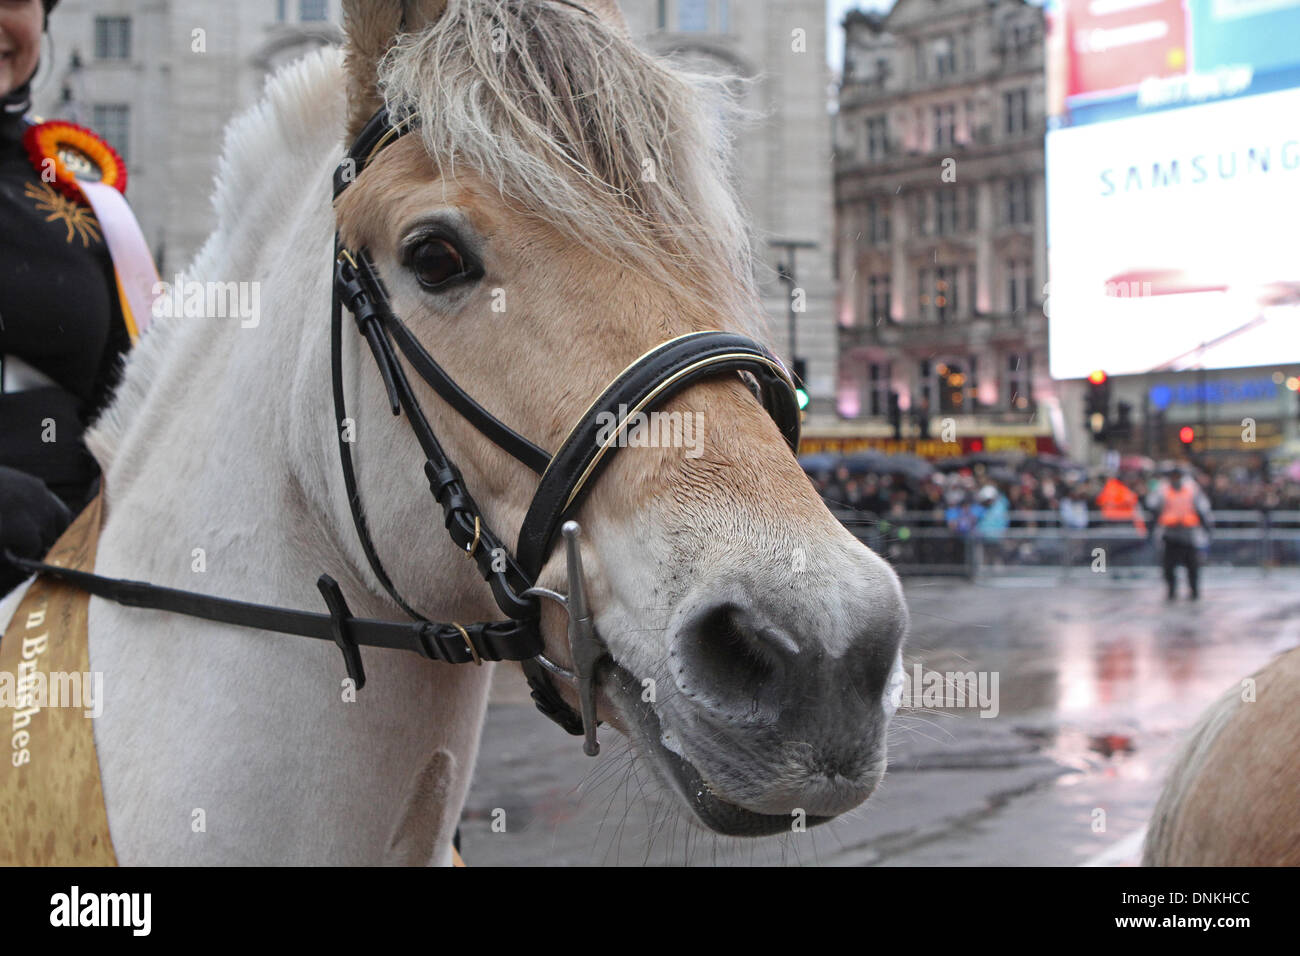 London,UK,1st January 2014,Horses joined the London's New Year's Day Parade 2014 Credit: Keith Larby/Alamy Live Stock Photo